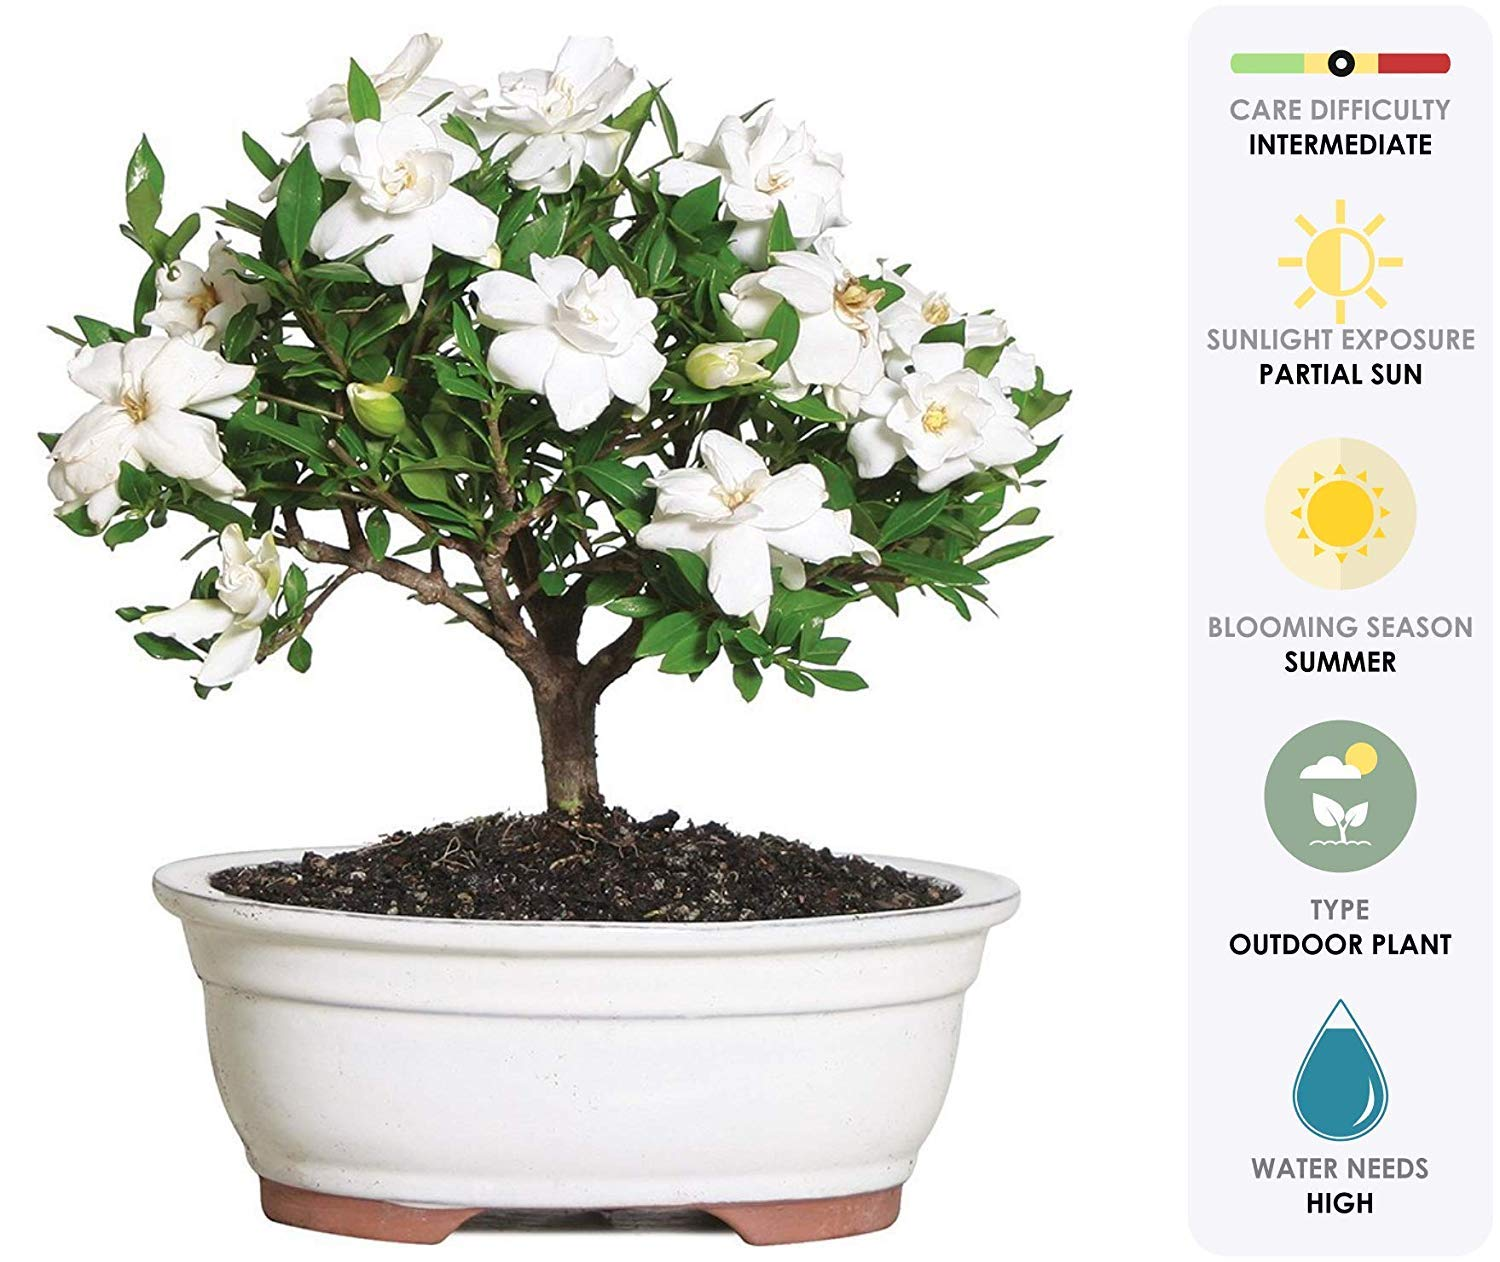 Brussel's Bonsai Live Gardenia Outdoor Bonsai Tree-4 Years Old 6'' to 8'' Tall with Decorative Container - Not Sold in Arizona, Medium, by Brussel's Bonsai (Image #1)